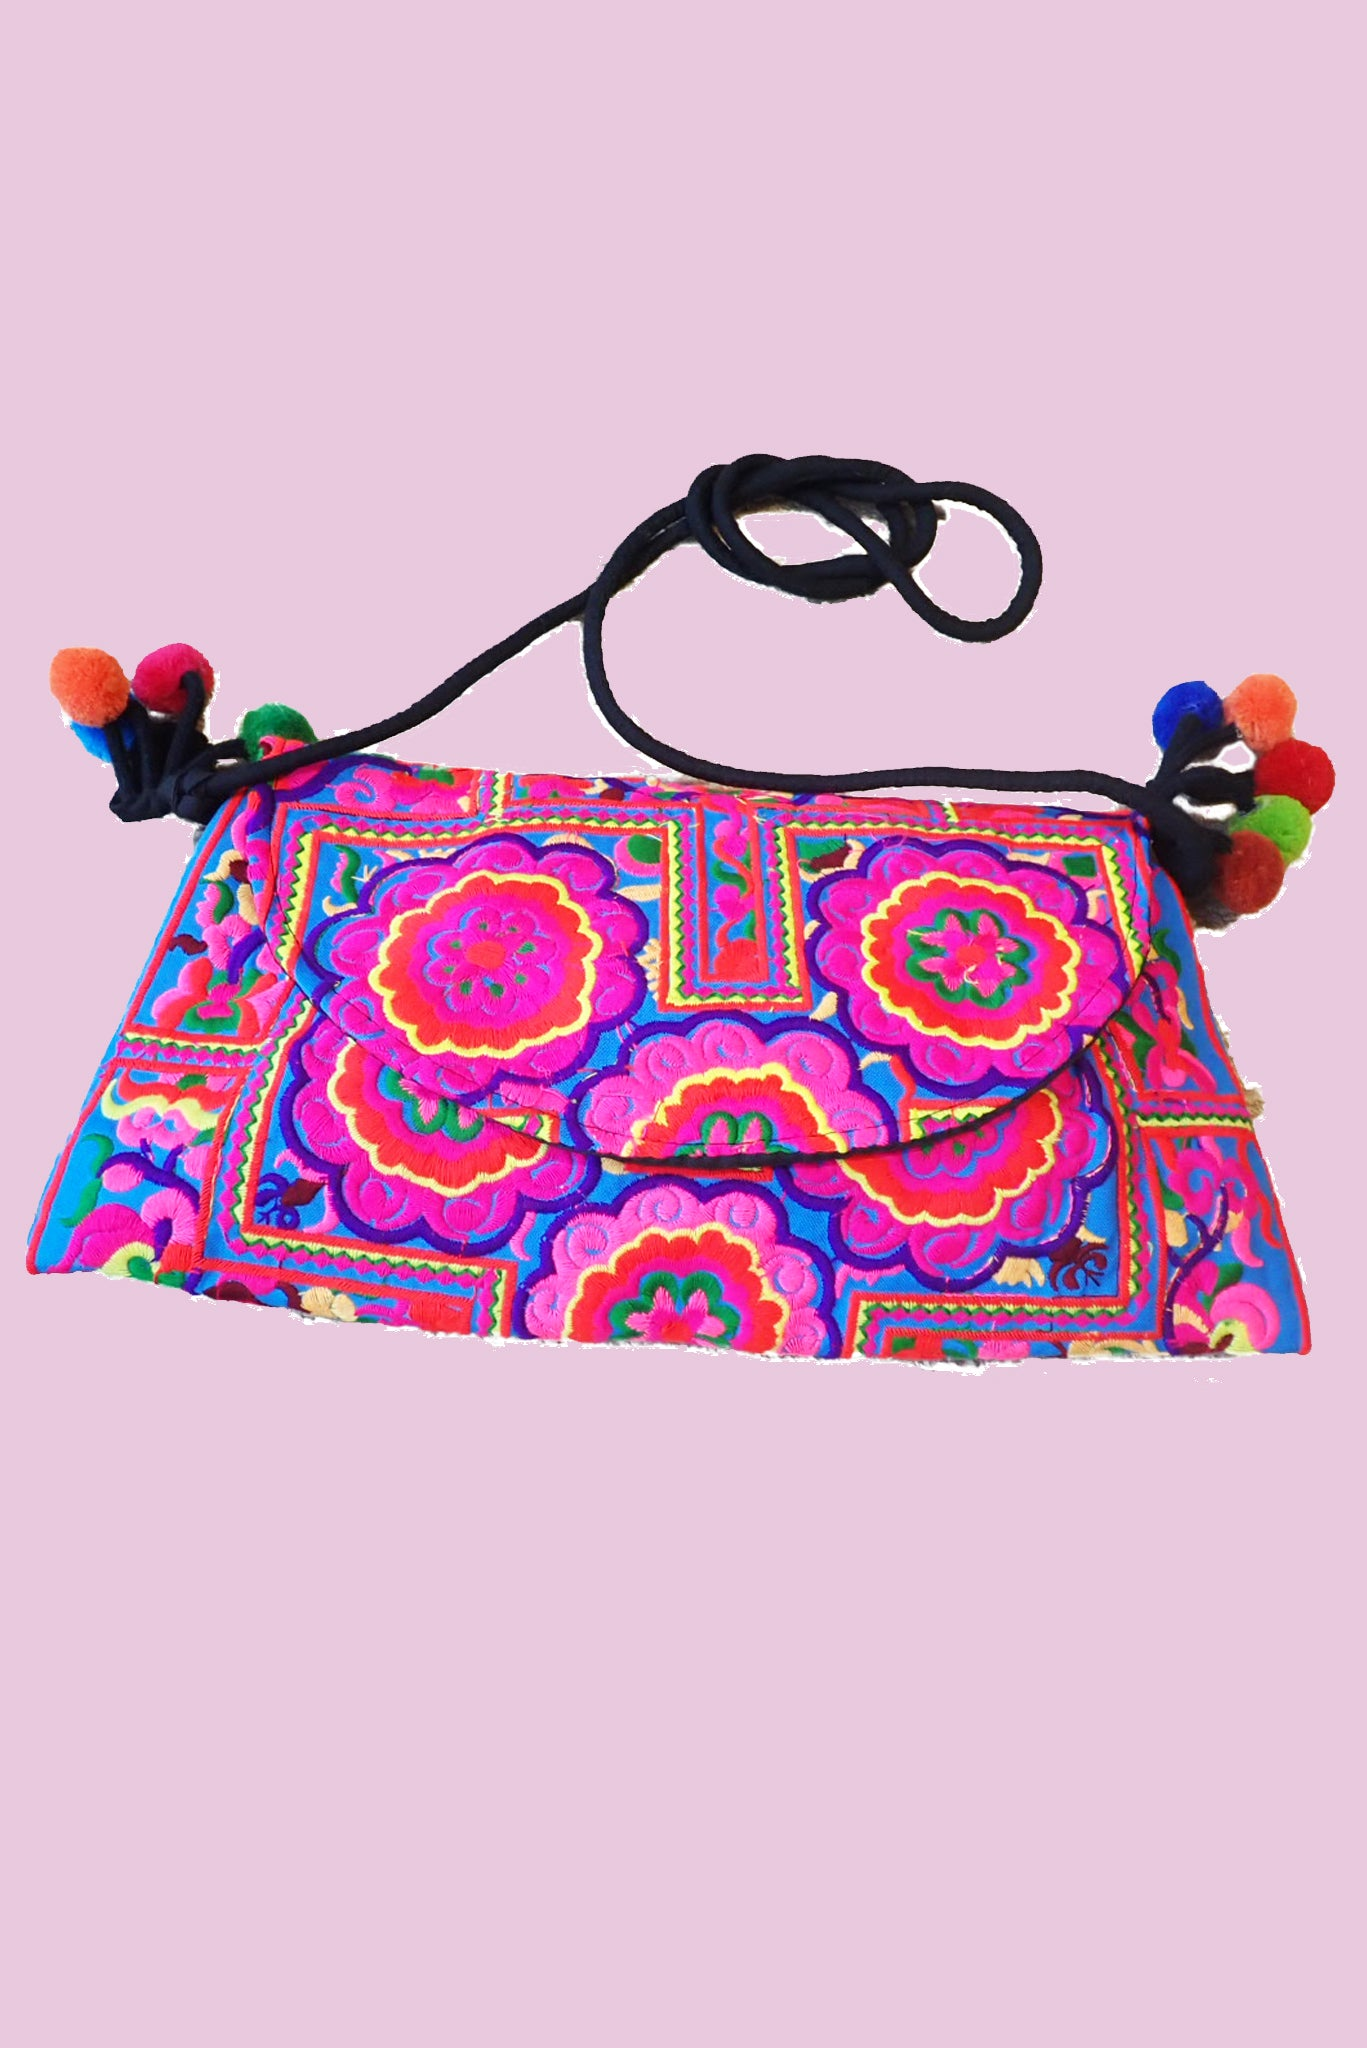 Brightly coloured fabric handbag with pompoms